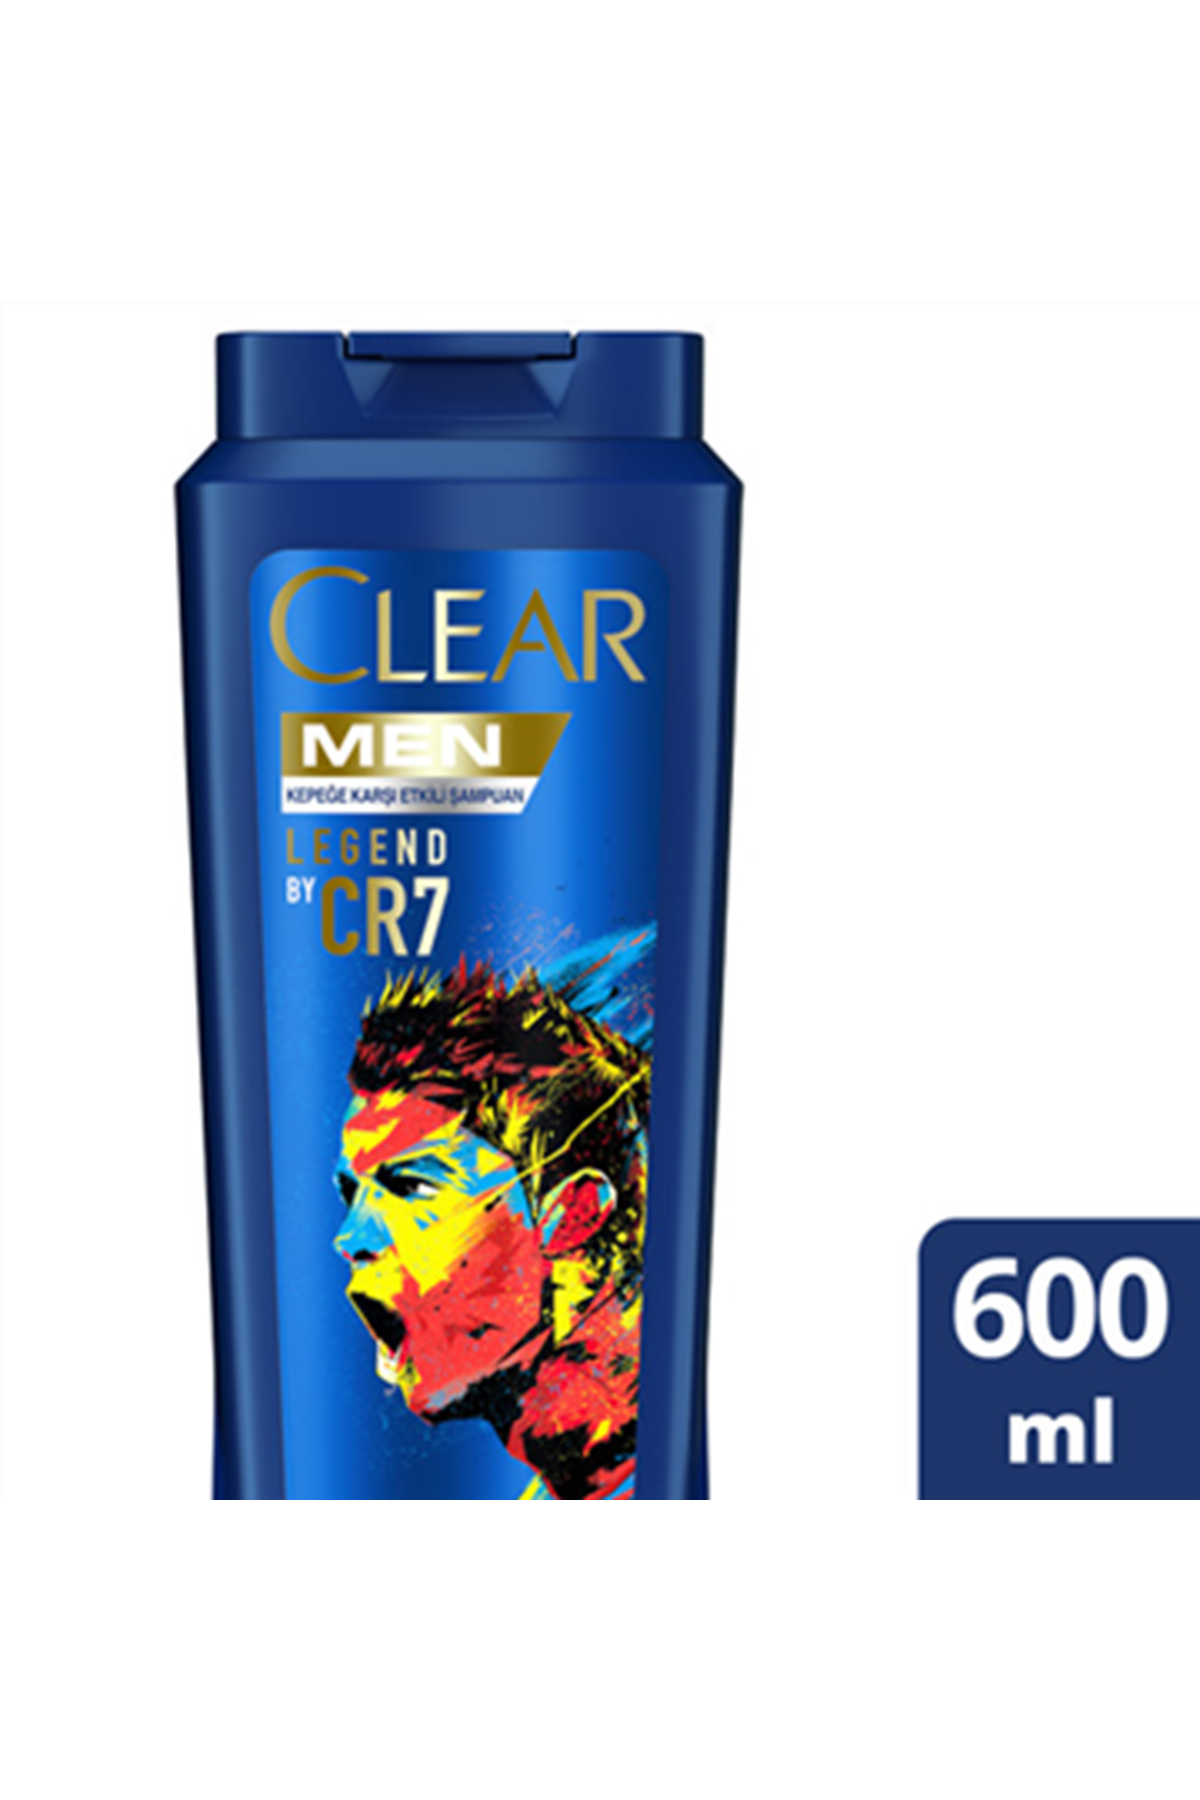 Clear Men Sampuan 600 ML Ronaldo Special Edition